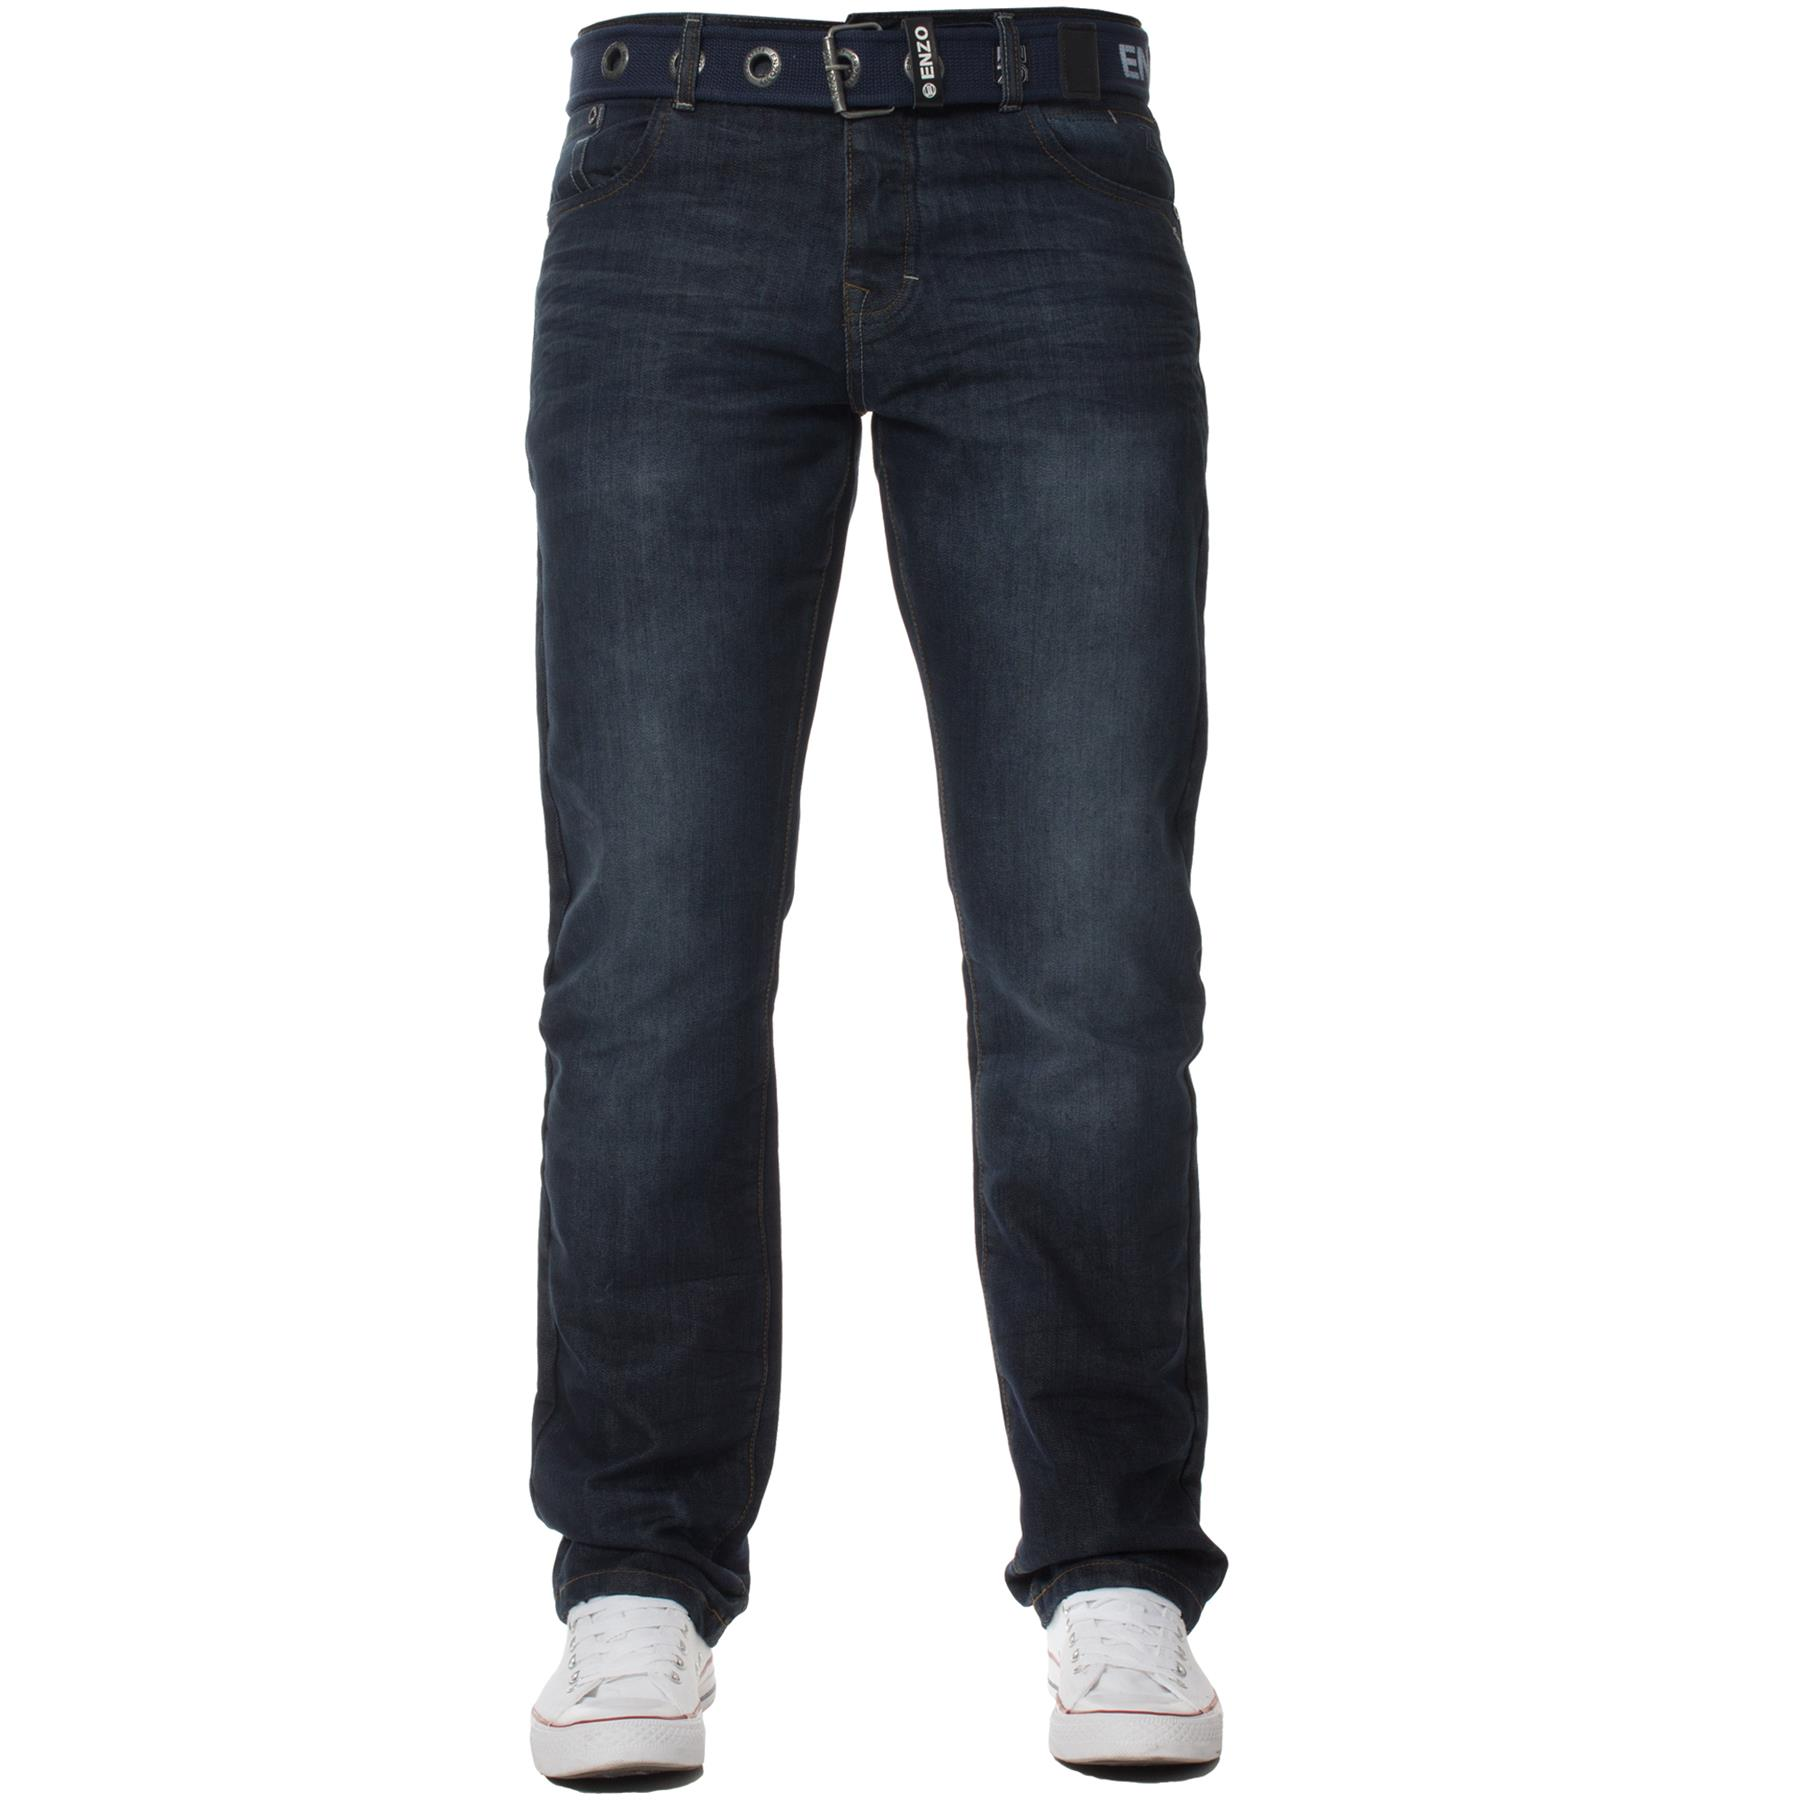 Enzo-Mens-Jeans-Big-Tall-Leg-King-Size-Denim-Pants-Chino-Trousers-Waist-44-034-60-034 miniature 75